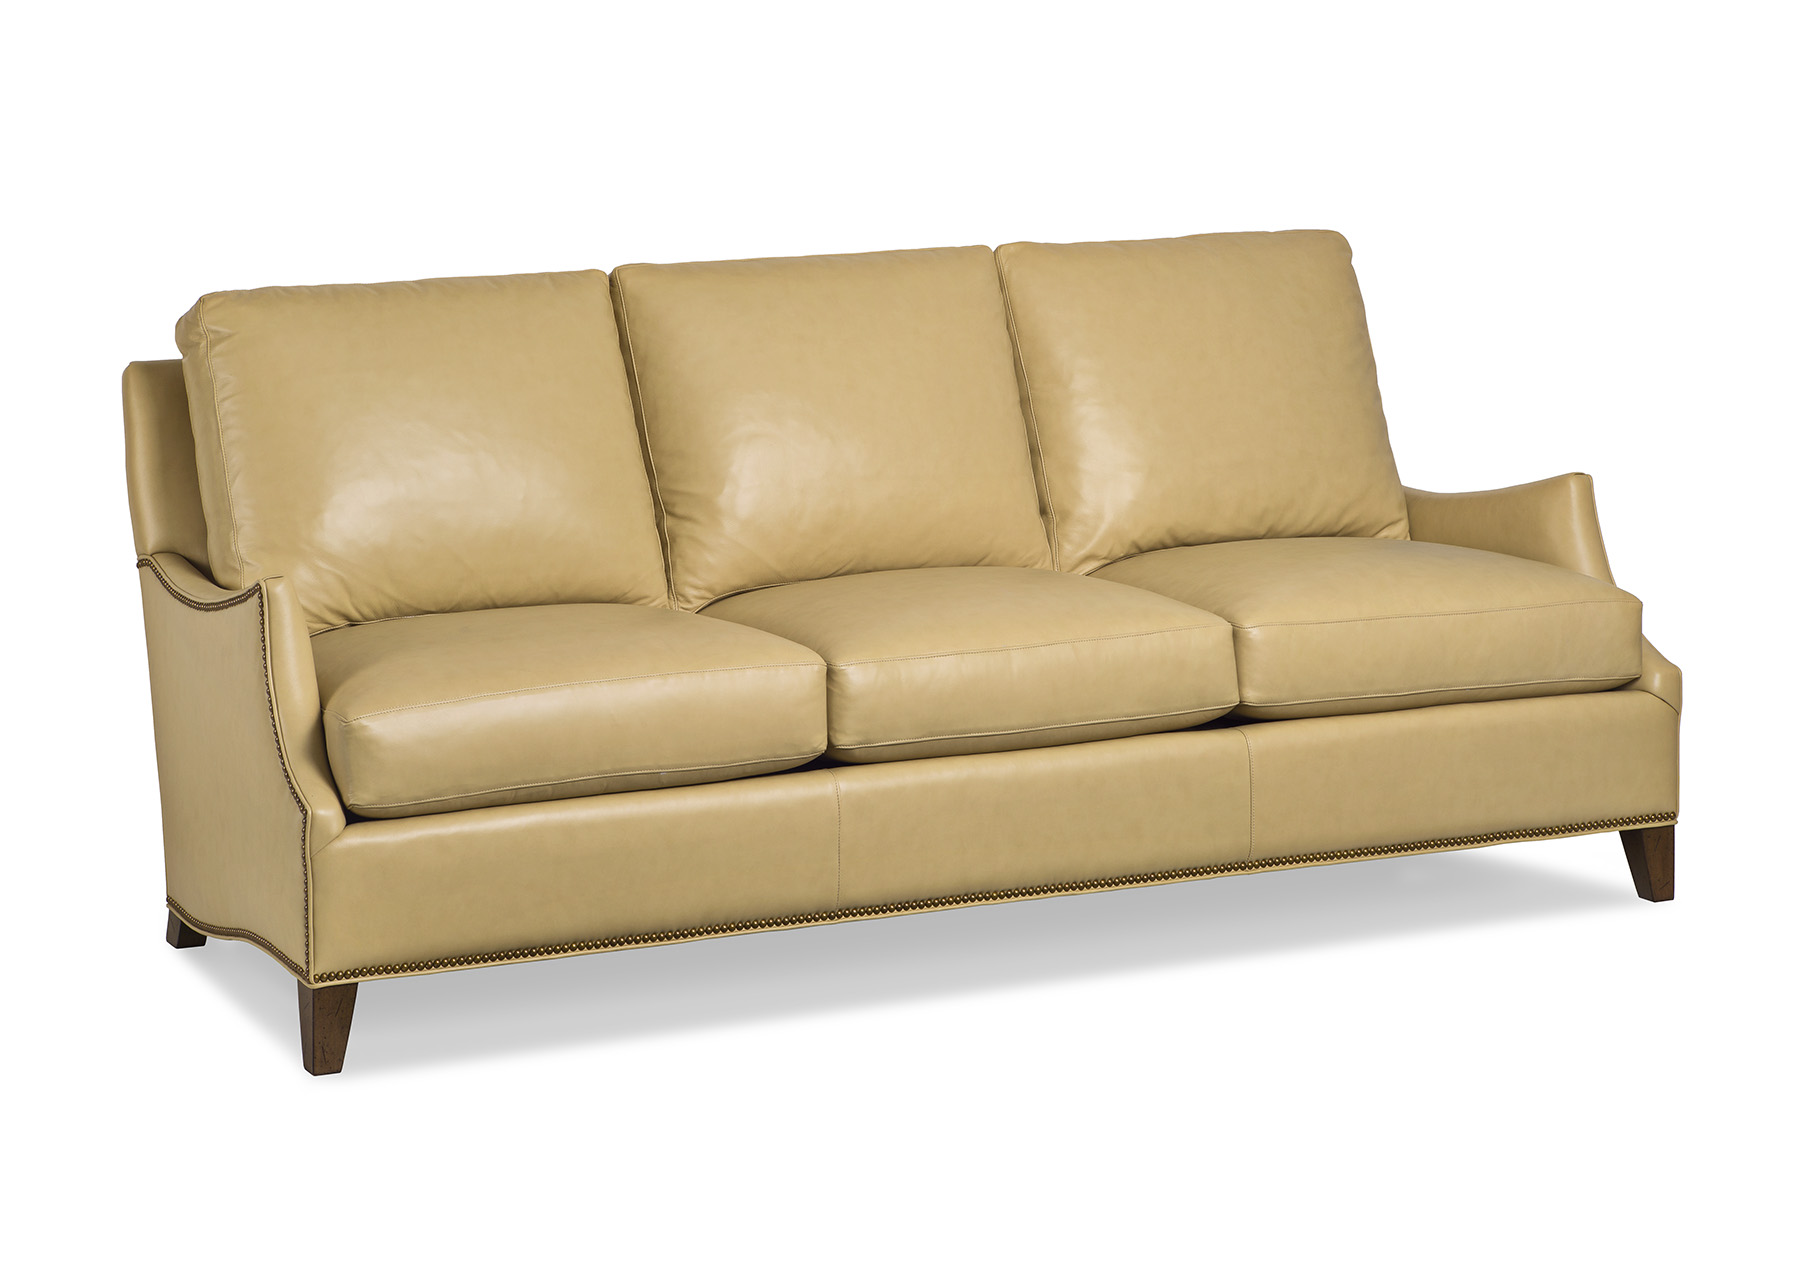 Hopewell Sofa